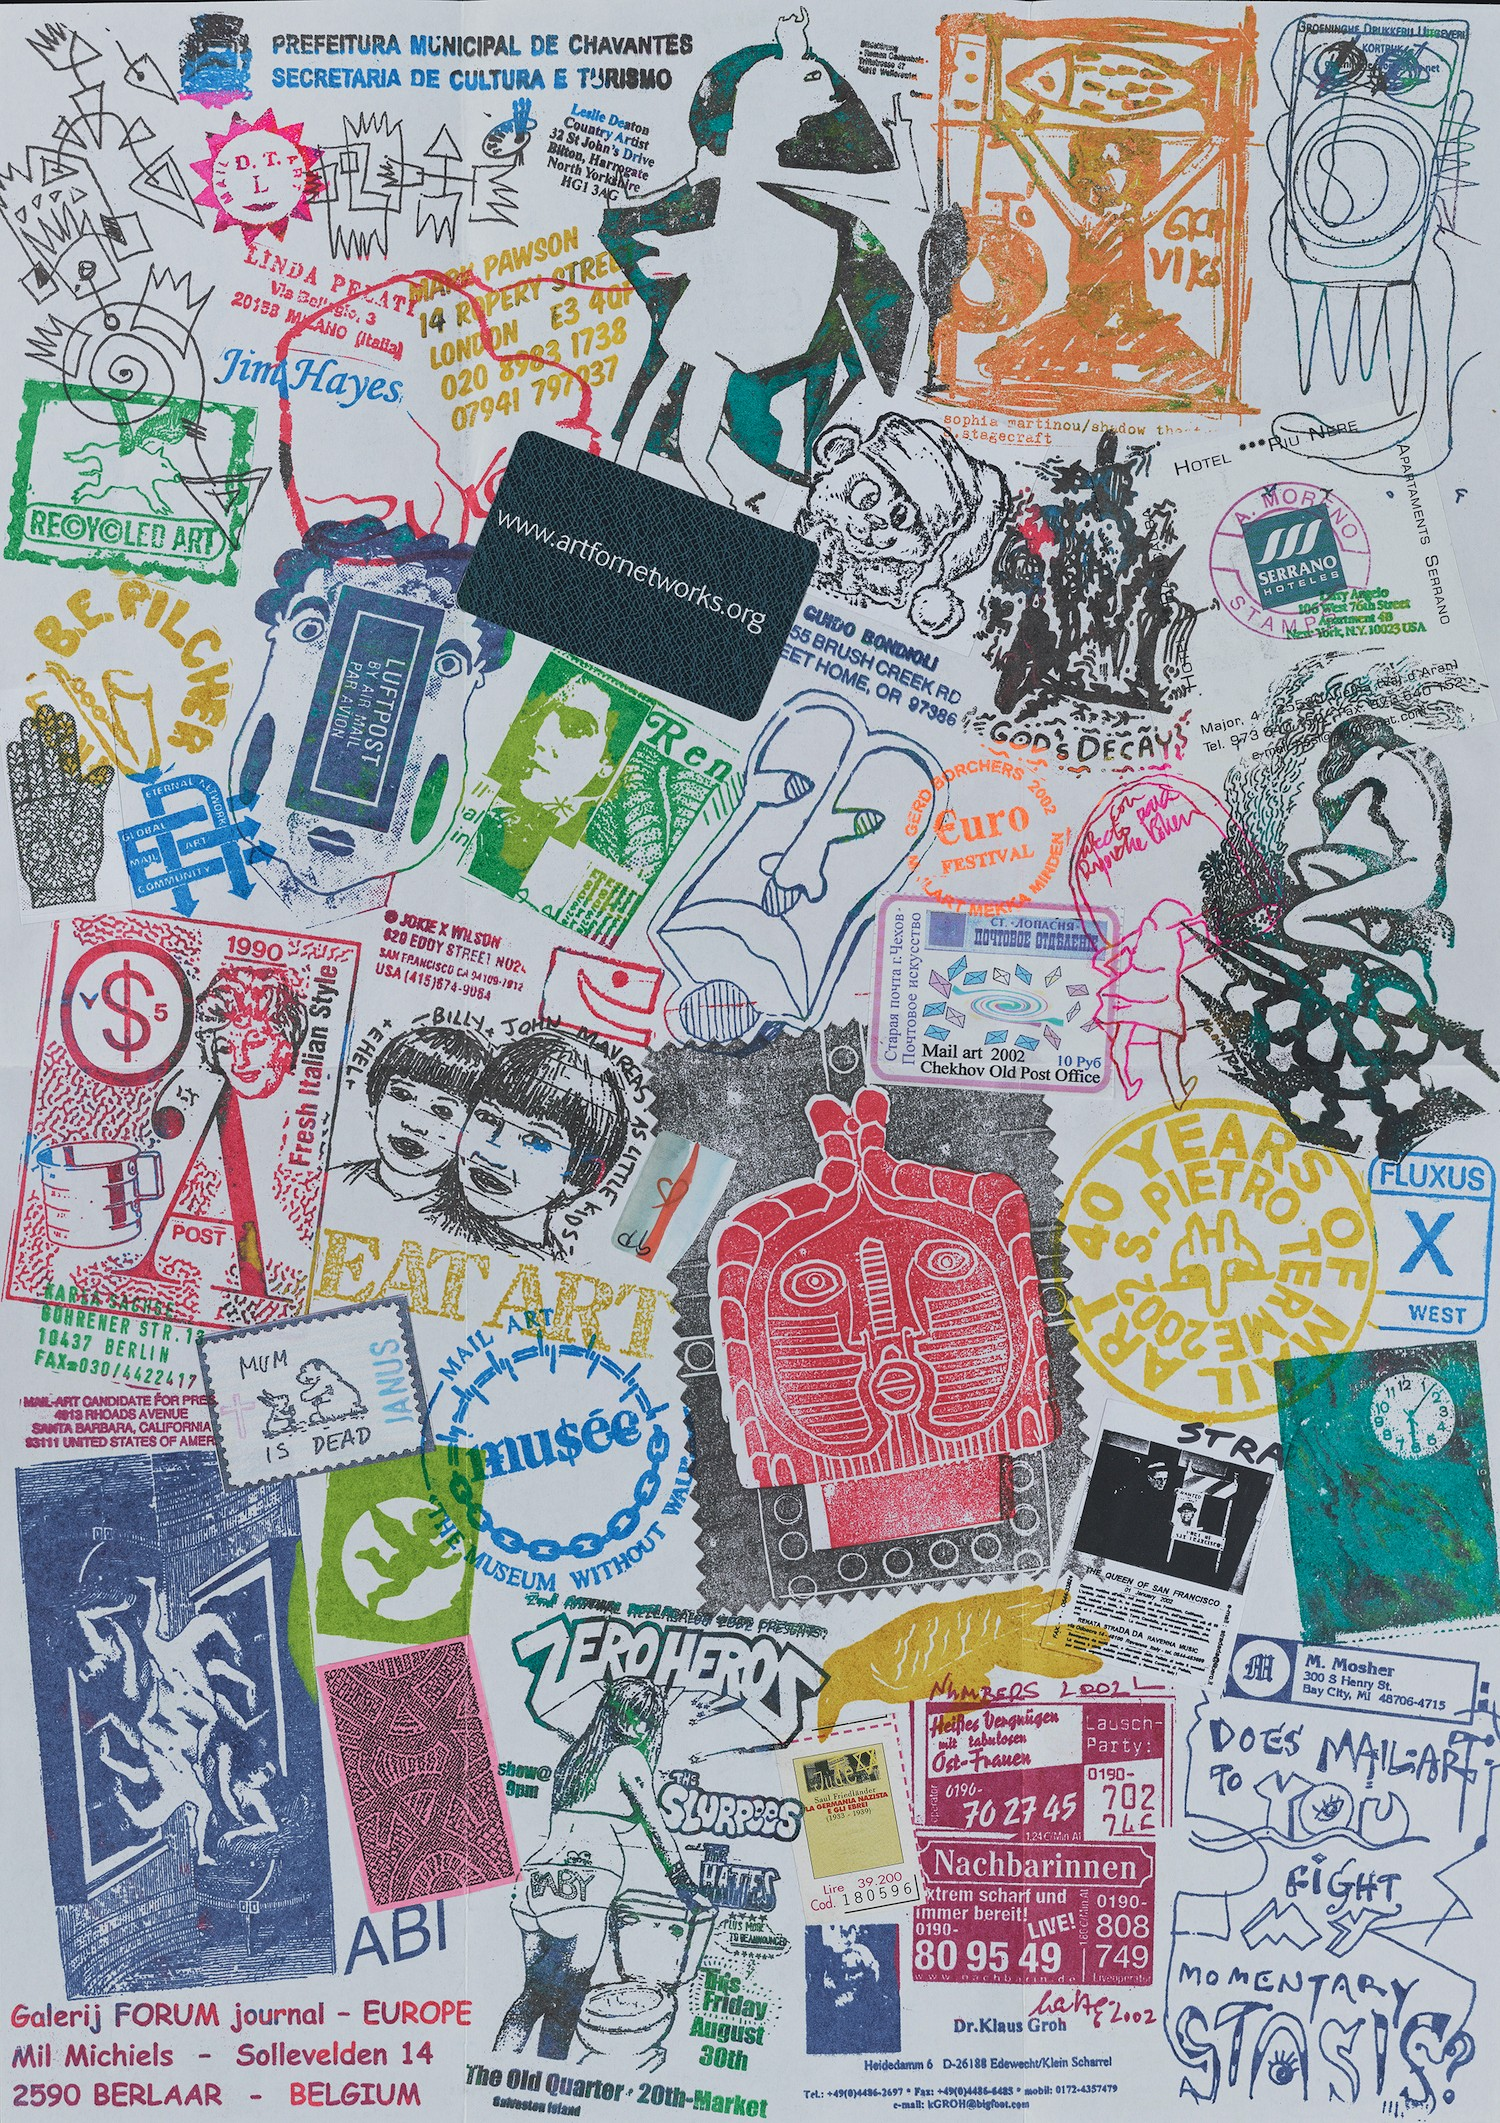 Ryosuke Cohen mail art to John Evans, 2002 (ongoing project since 1985). John Evans papers, Archives of American Art, Smithsonian Institution. - JOHN EVANS PAPERS, ARCHIVES OF AMERICAN ART, SMITHSONIAN INSTITUTION.